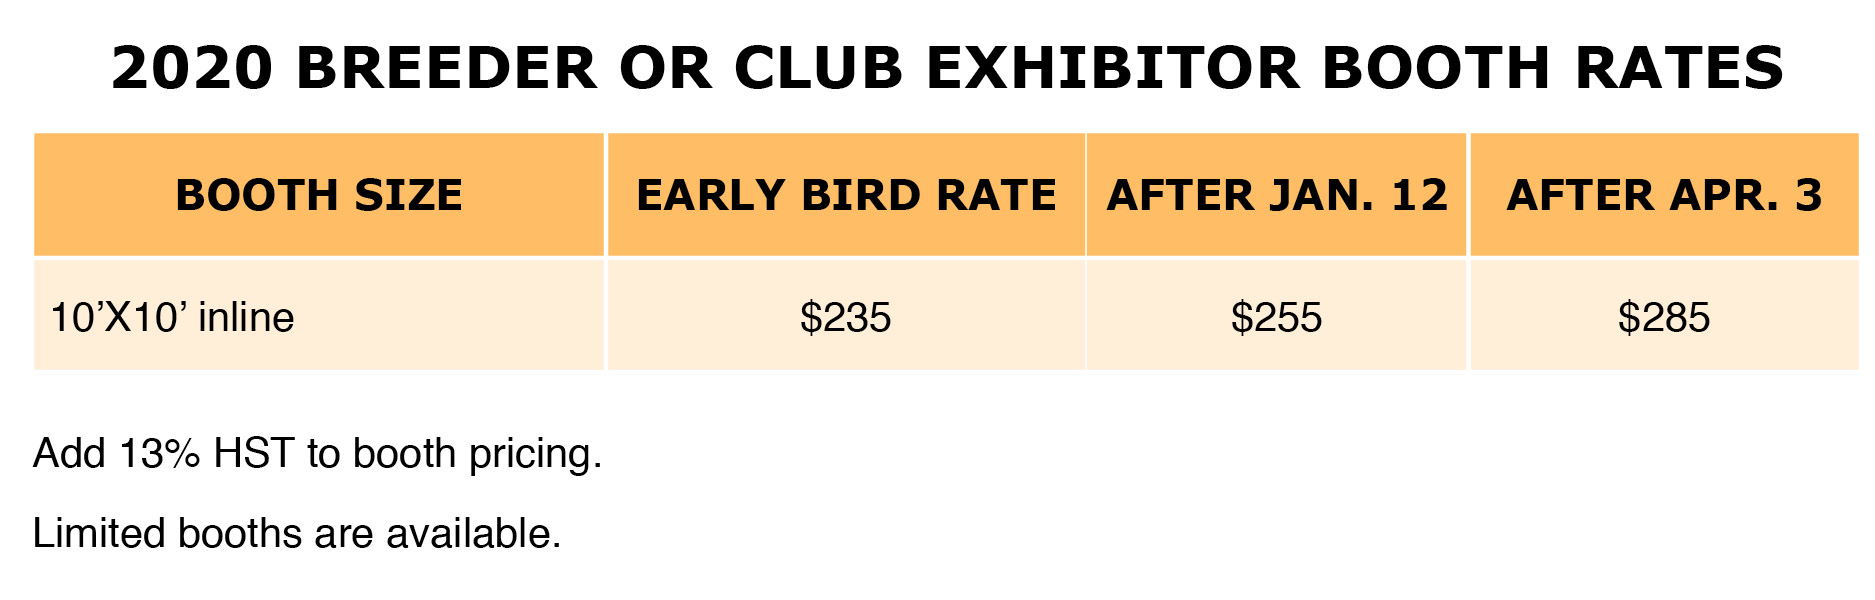 2020 Club or Breeder Booth Rates